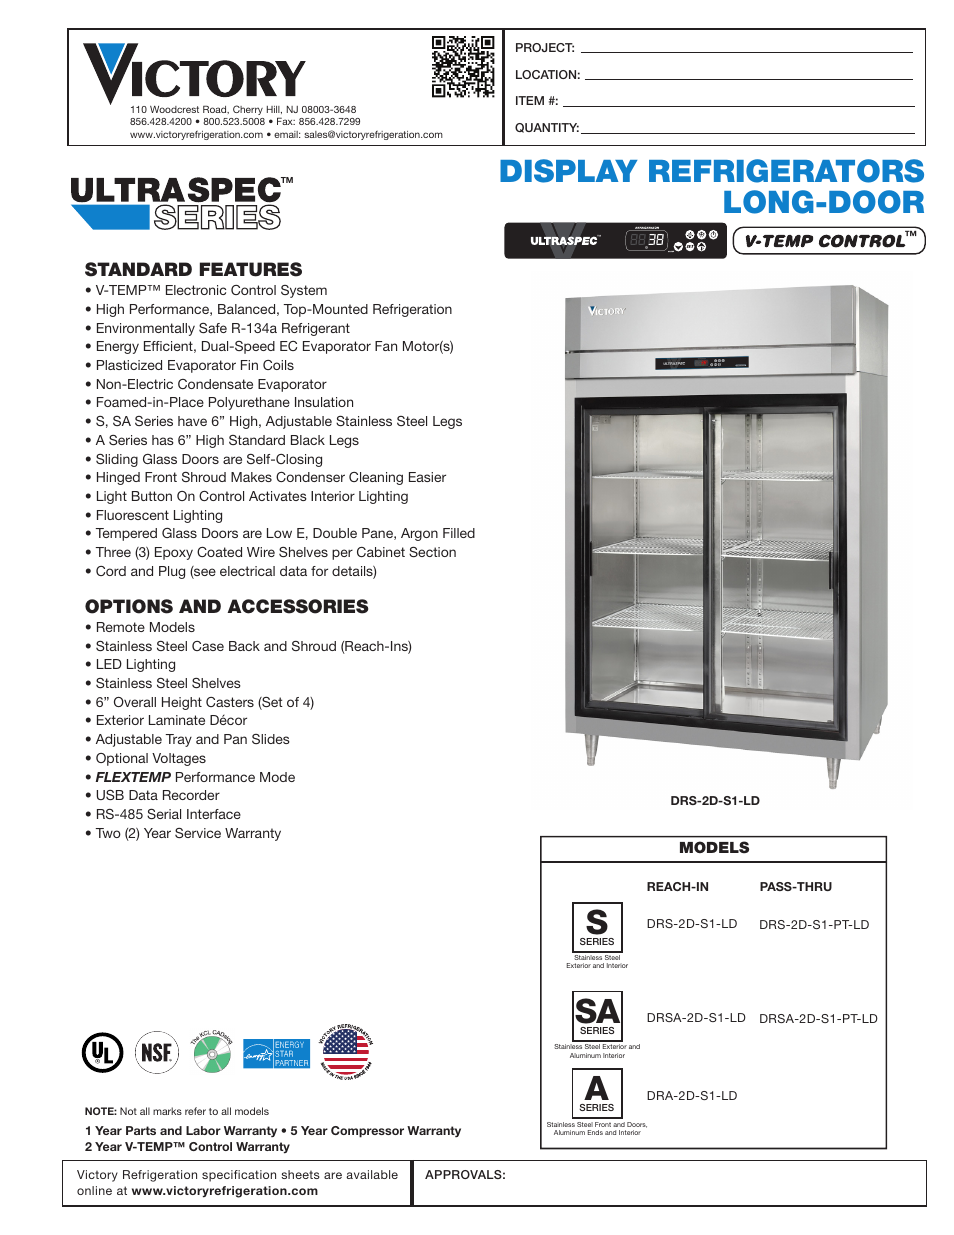 Victory Refrigeration Images